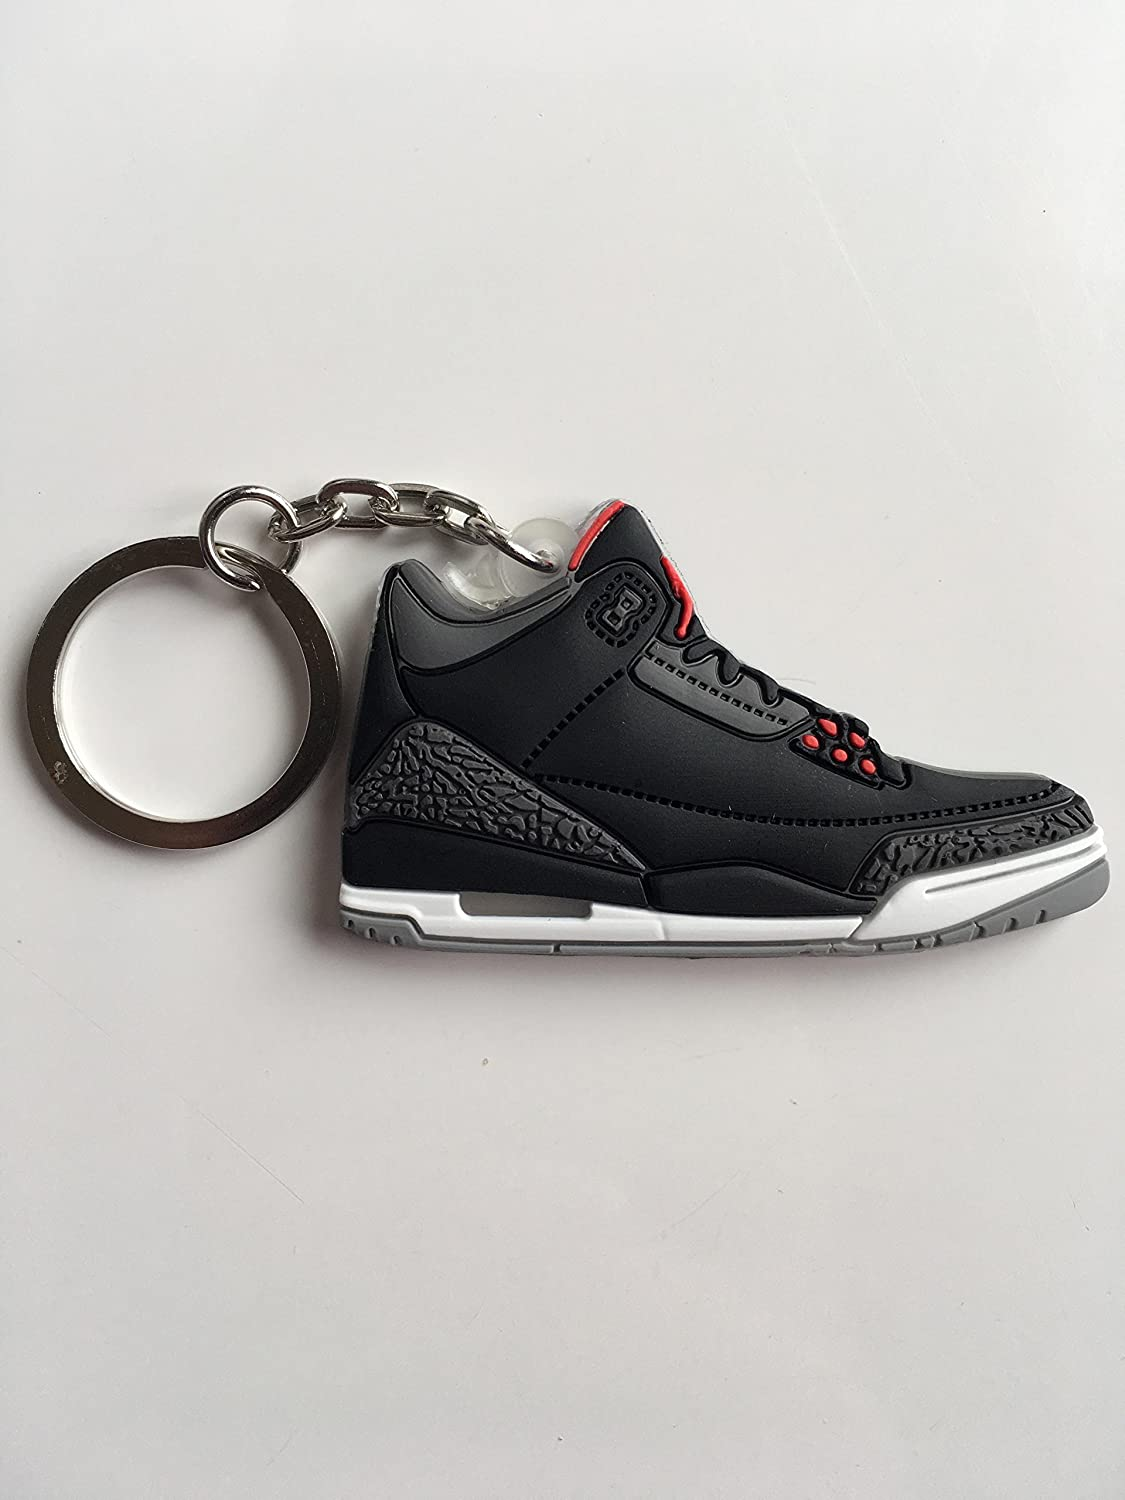 new concept 2b6c8 734fe Amazon.com : Jordan Retro 3 Black Cement Sneaker Keychain ...